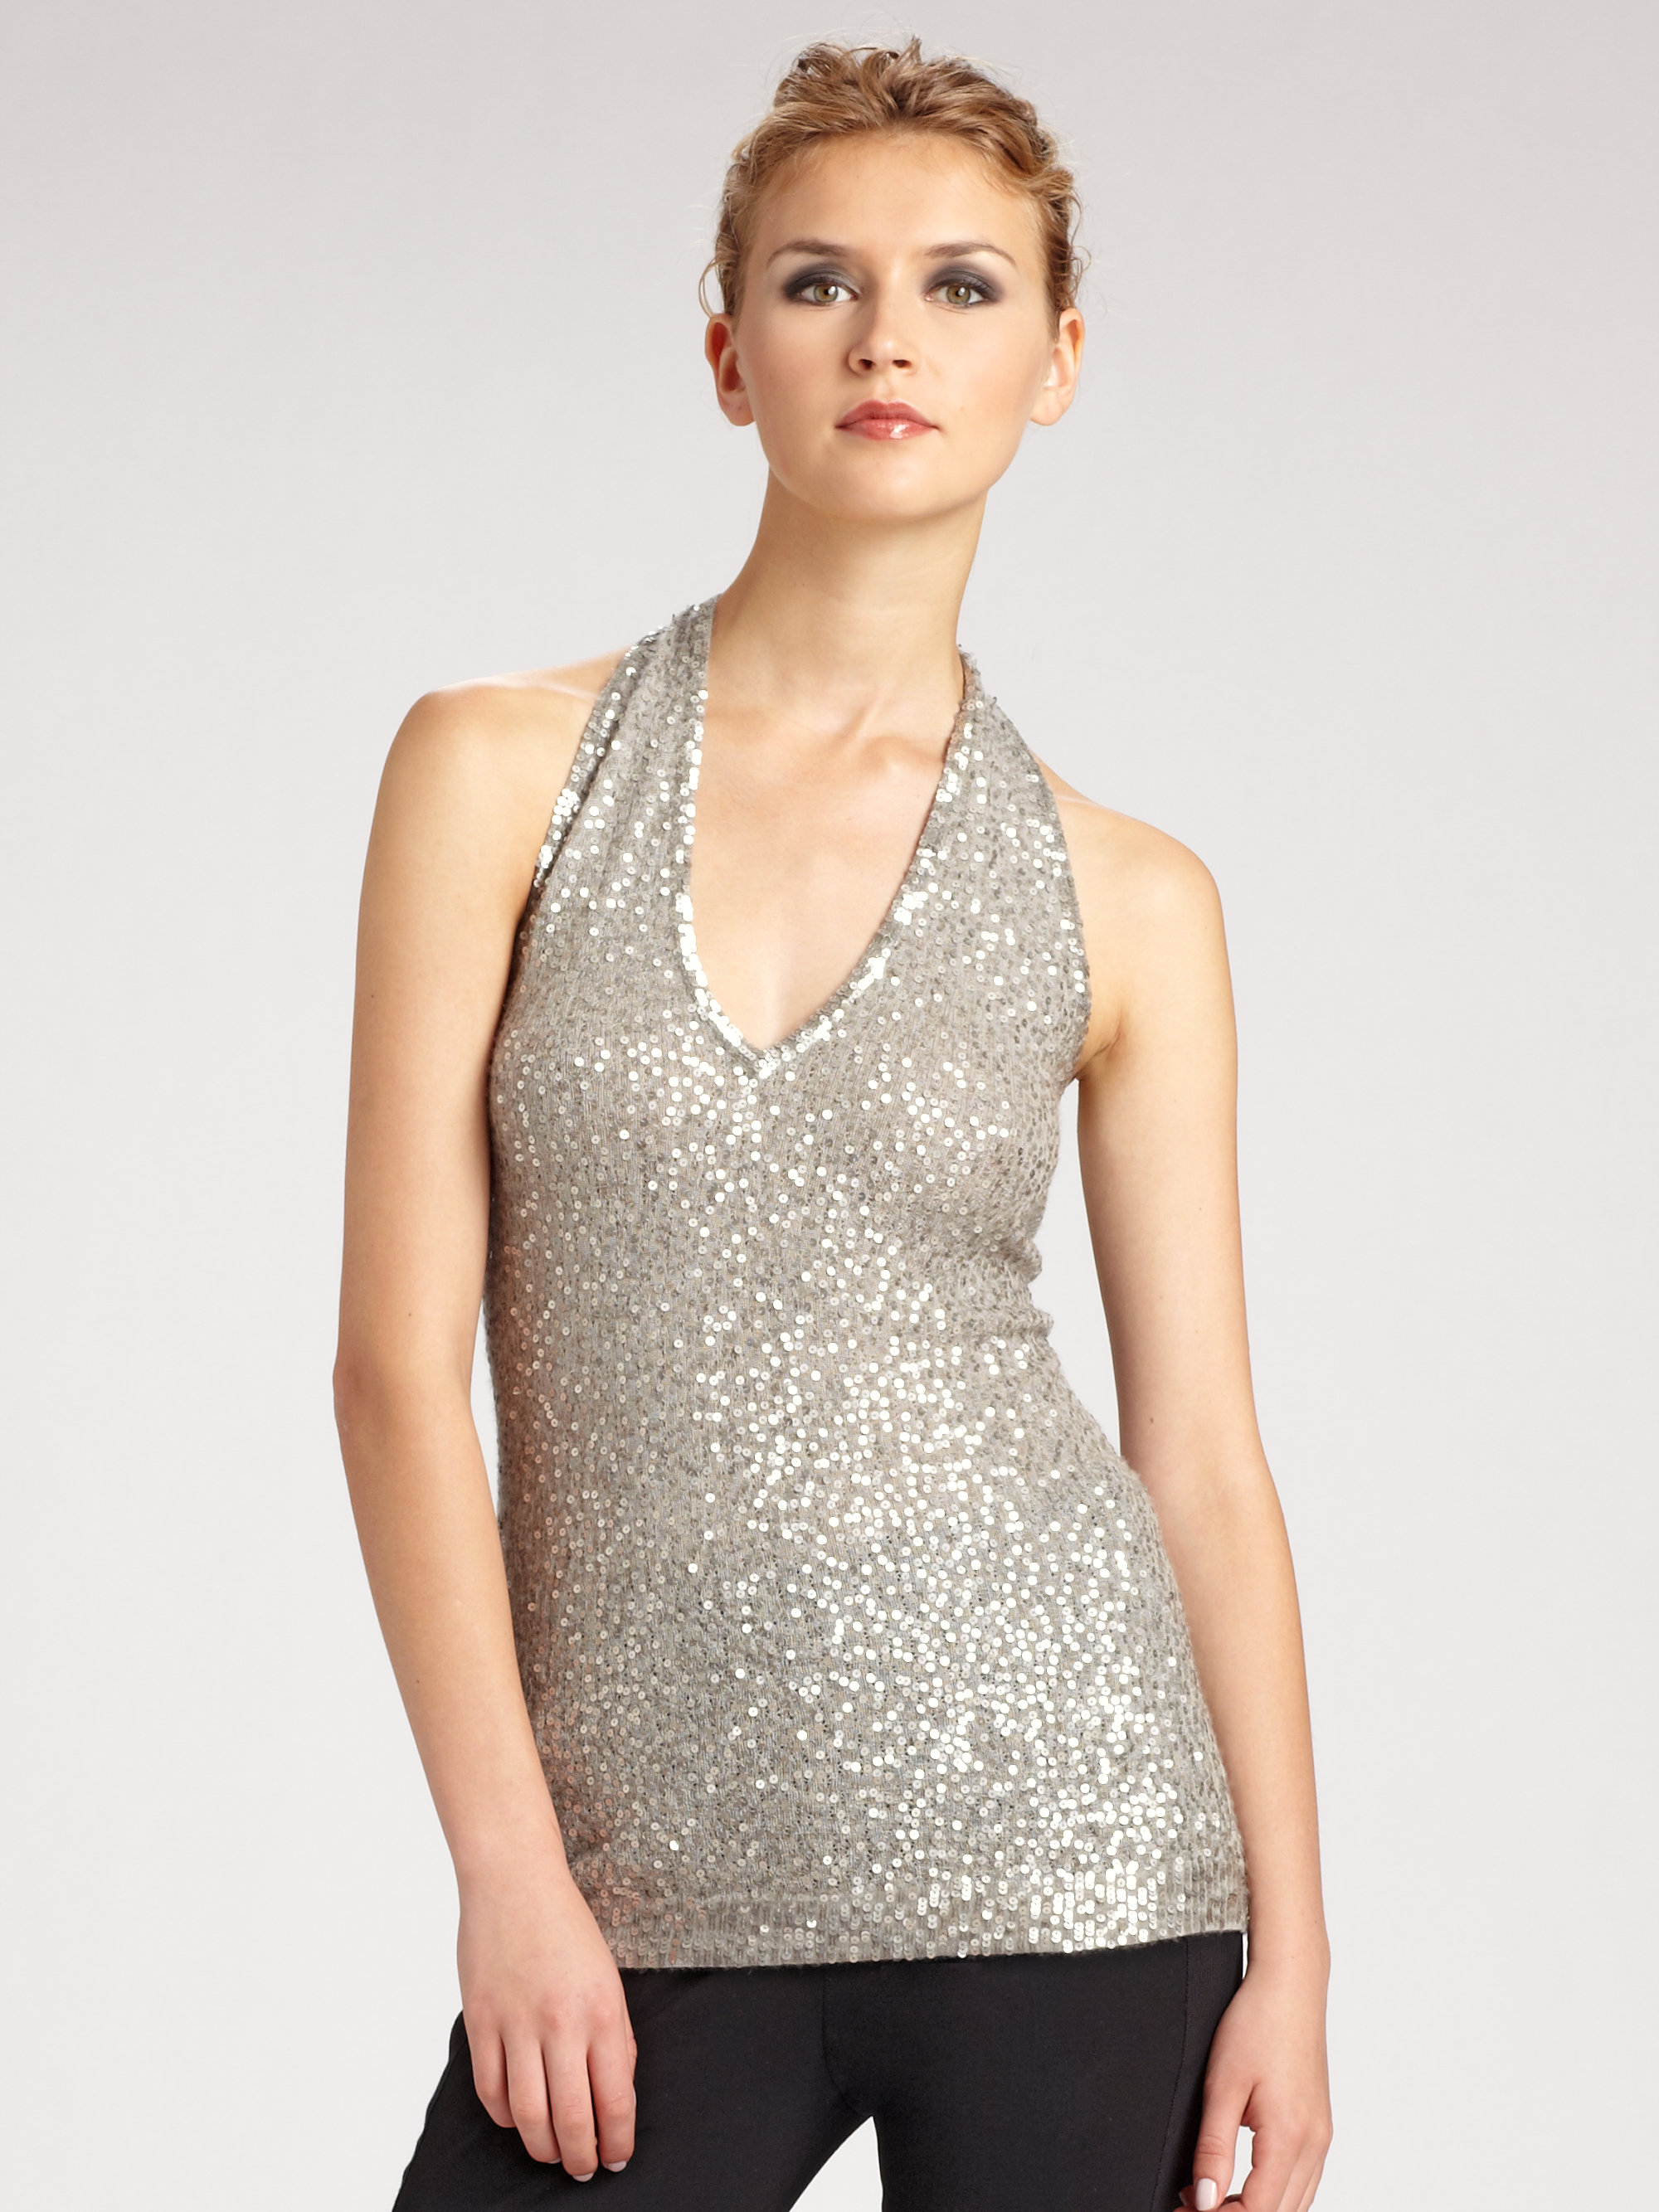 f1d91fc6b5a32e Lyst - Donna Karan Sequin Vneck Halter Top in Metallic